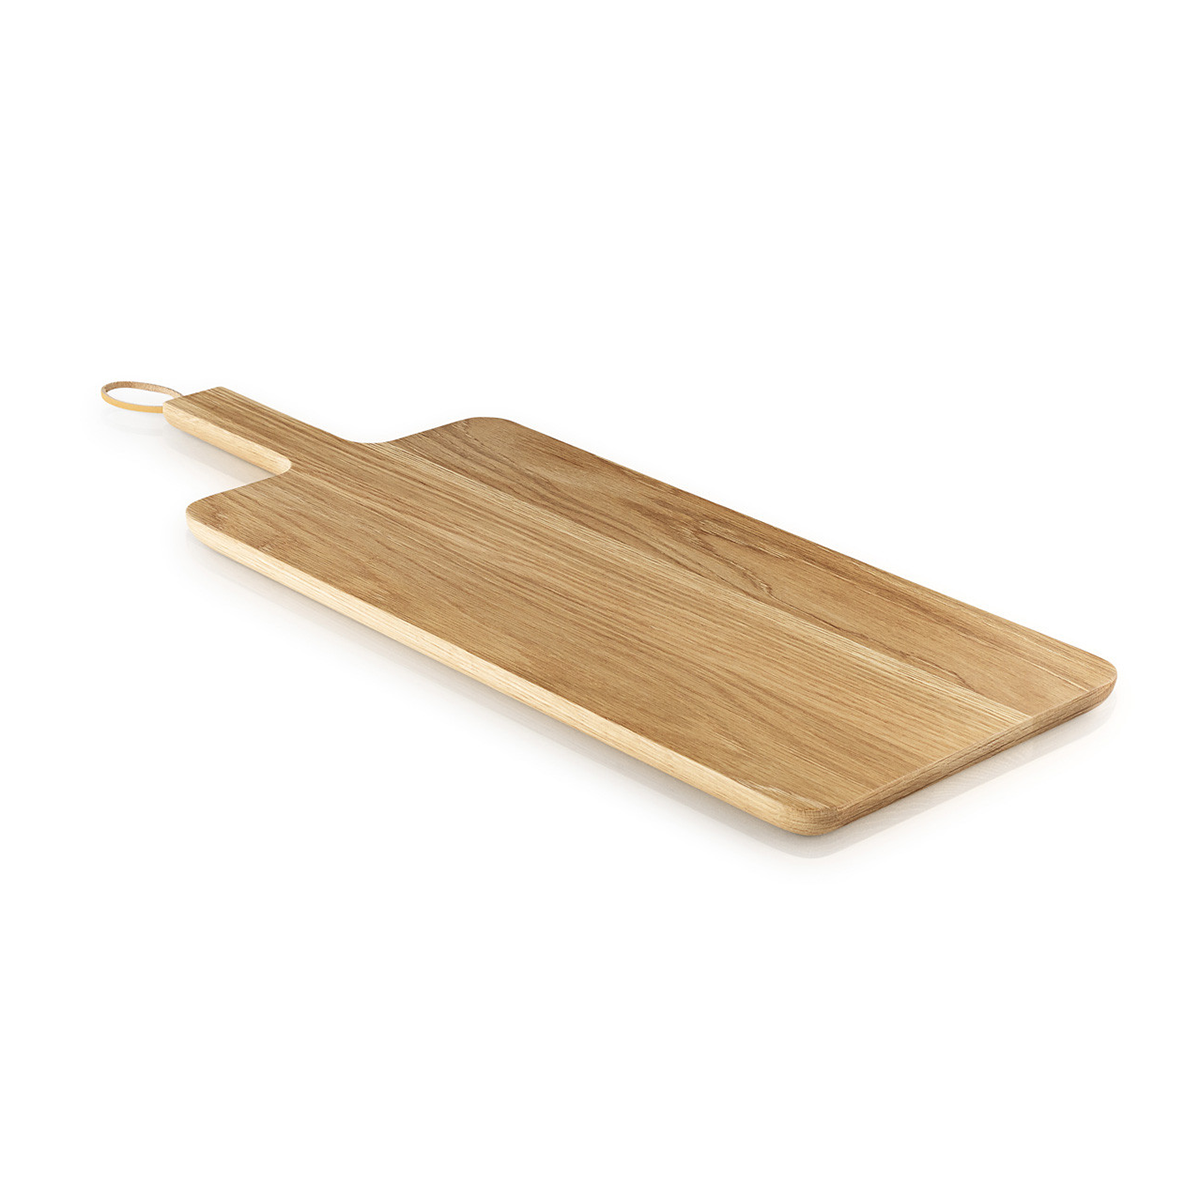 Eva Solo Nordic Kitchen Cutting Board 船槳 木質 料理砧板